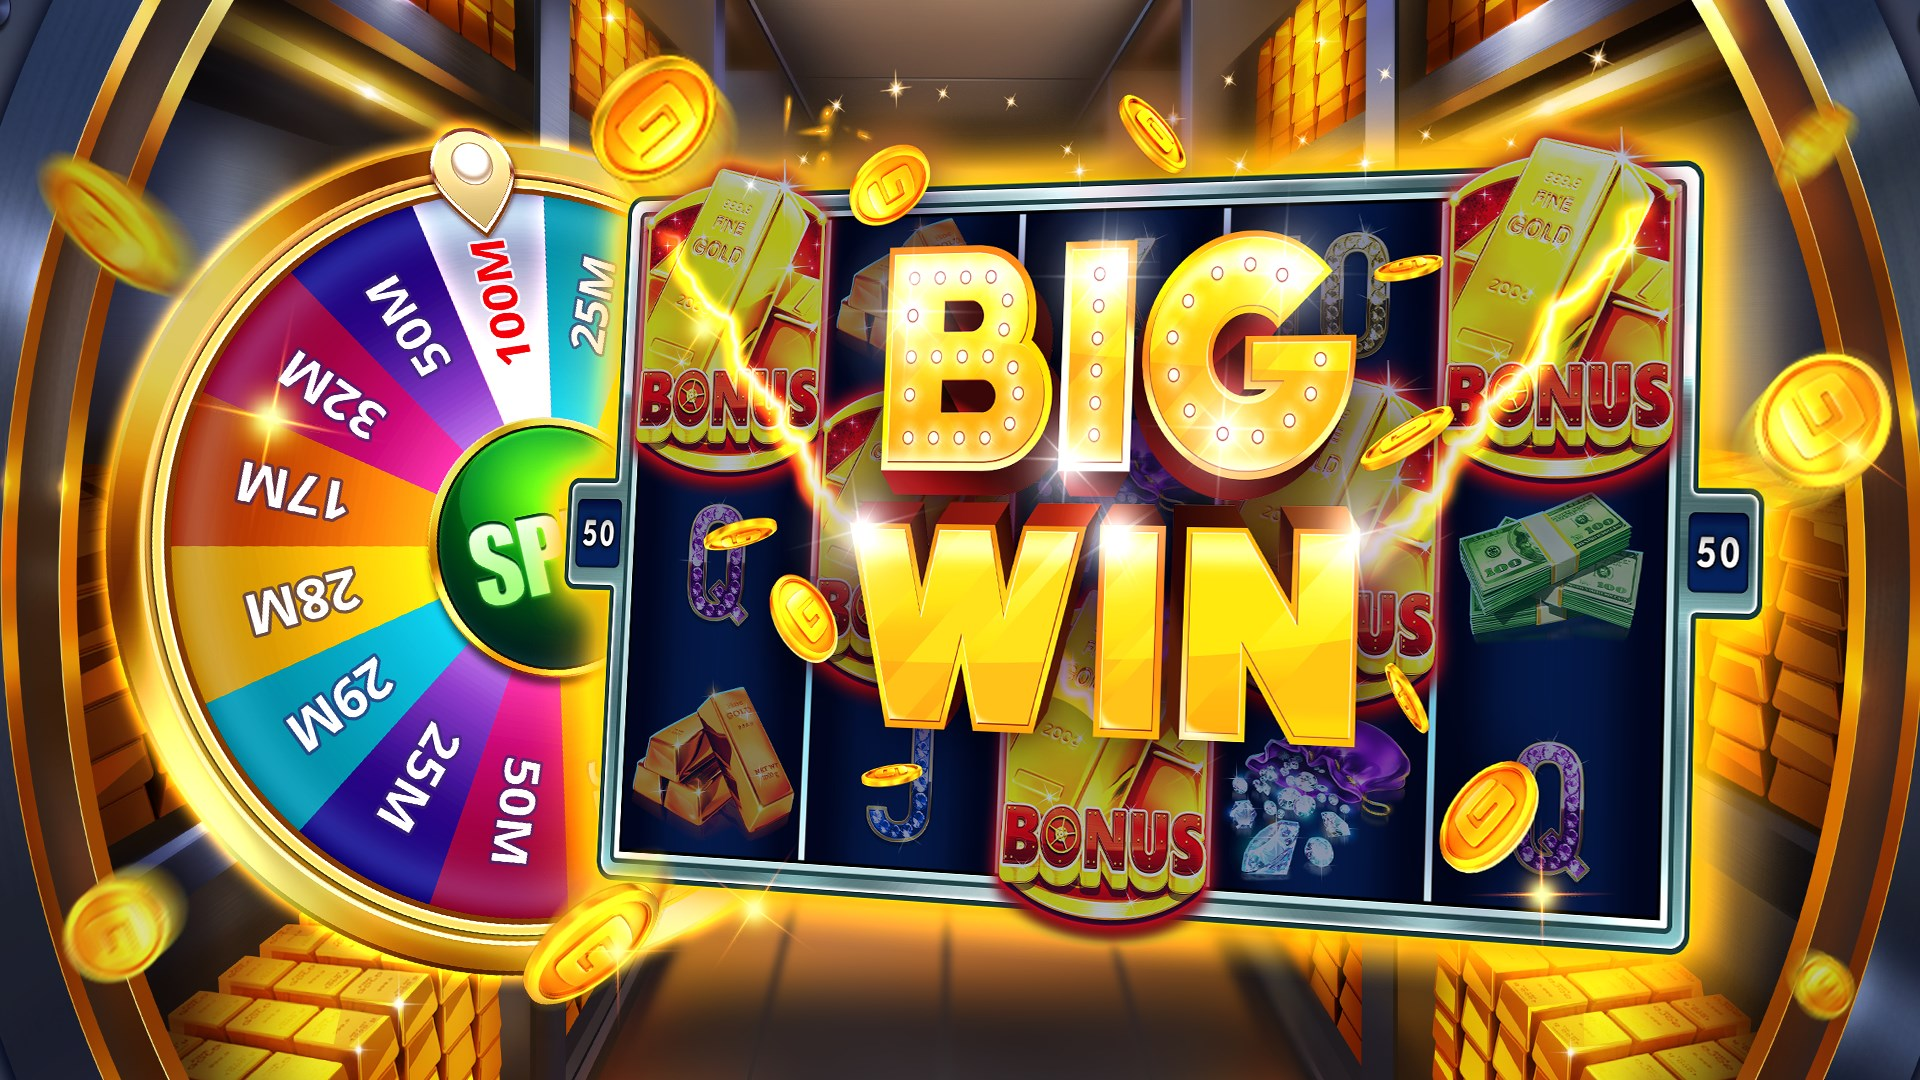 Sir jackpot free spins no deposit